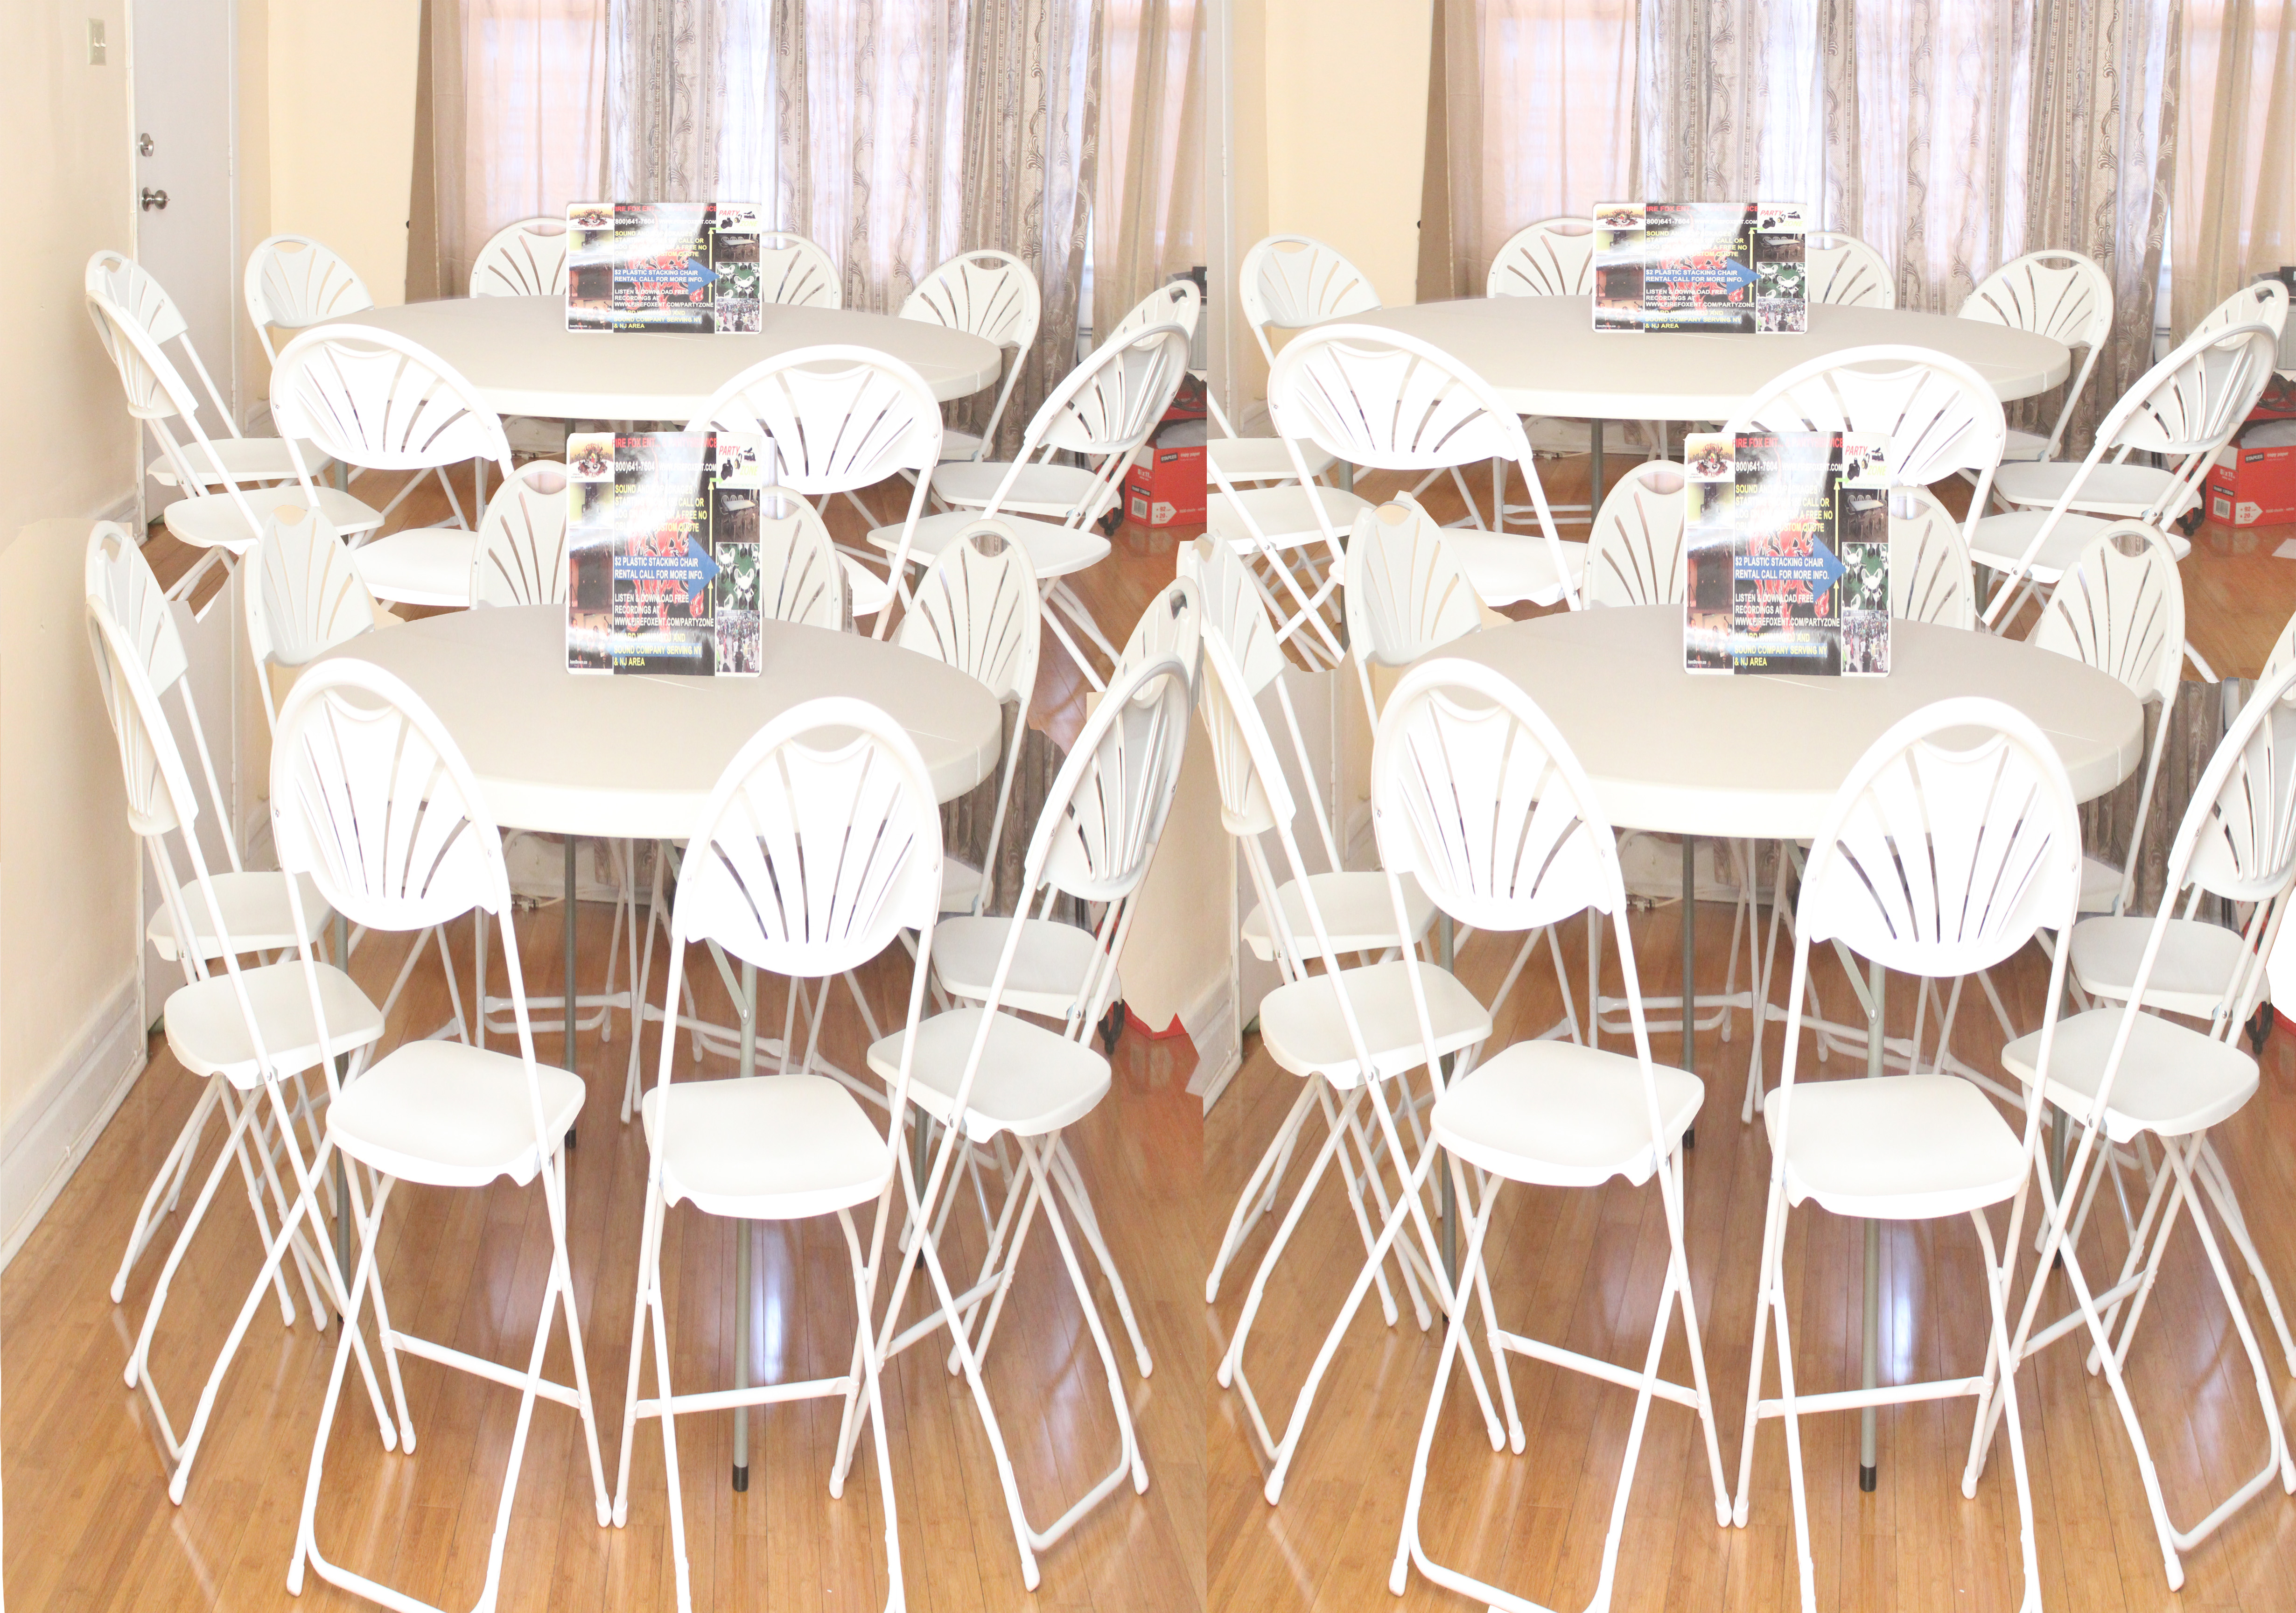 Table Chair Tent Rental Table Rental Chair Rental Tent